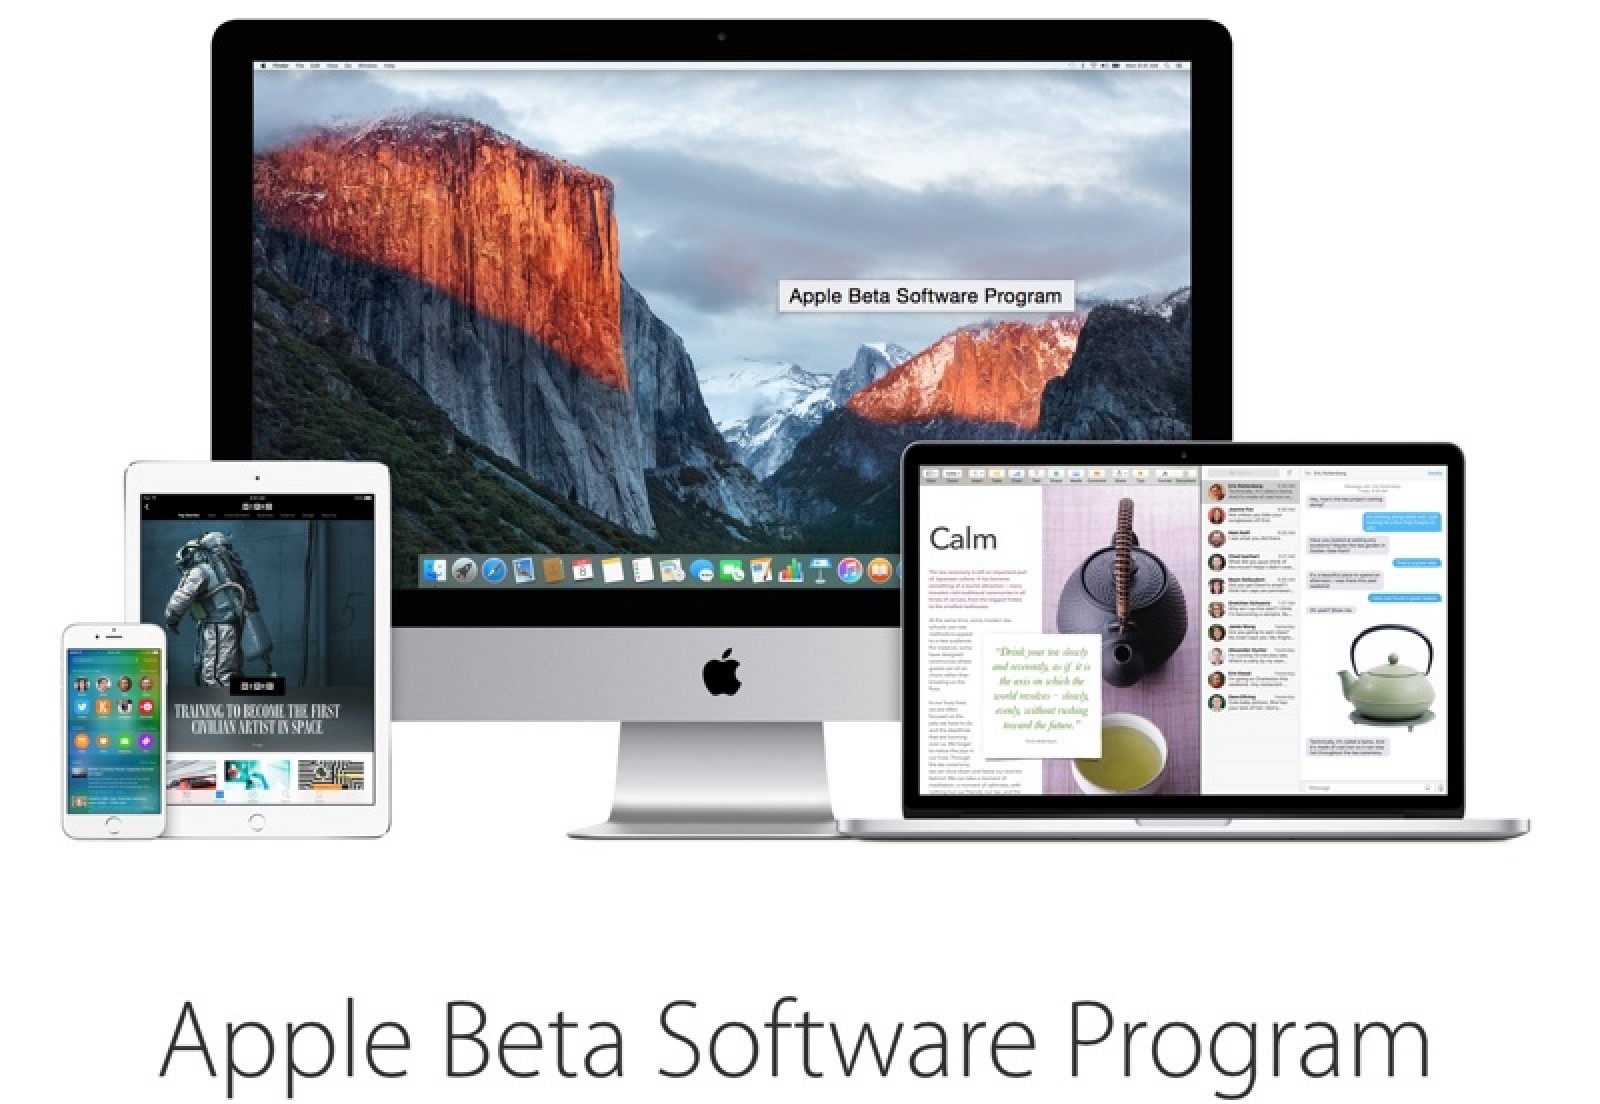 Apple releases public betas of iOS 9 and OS X El Capitan